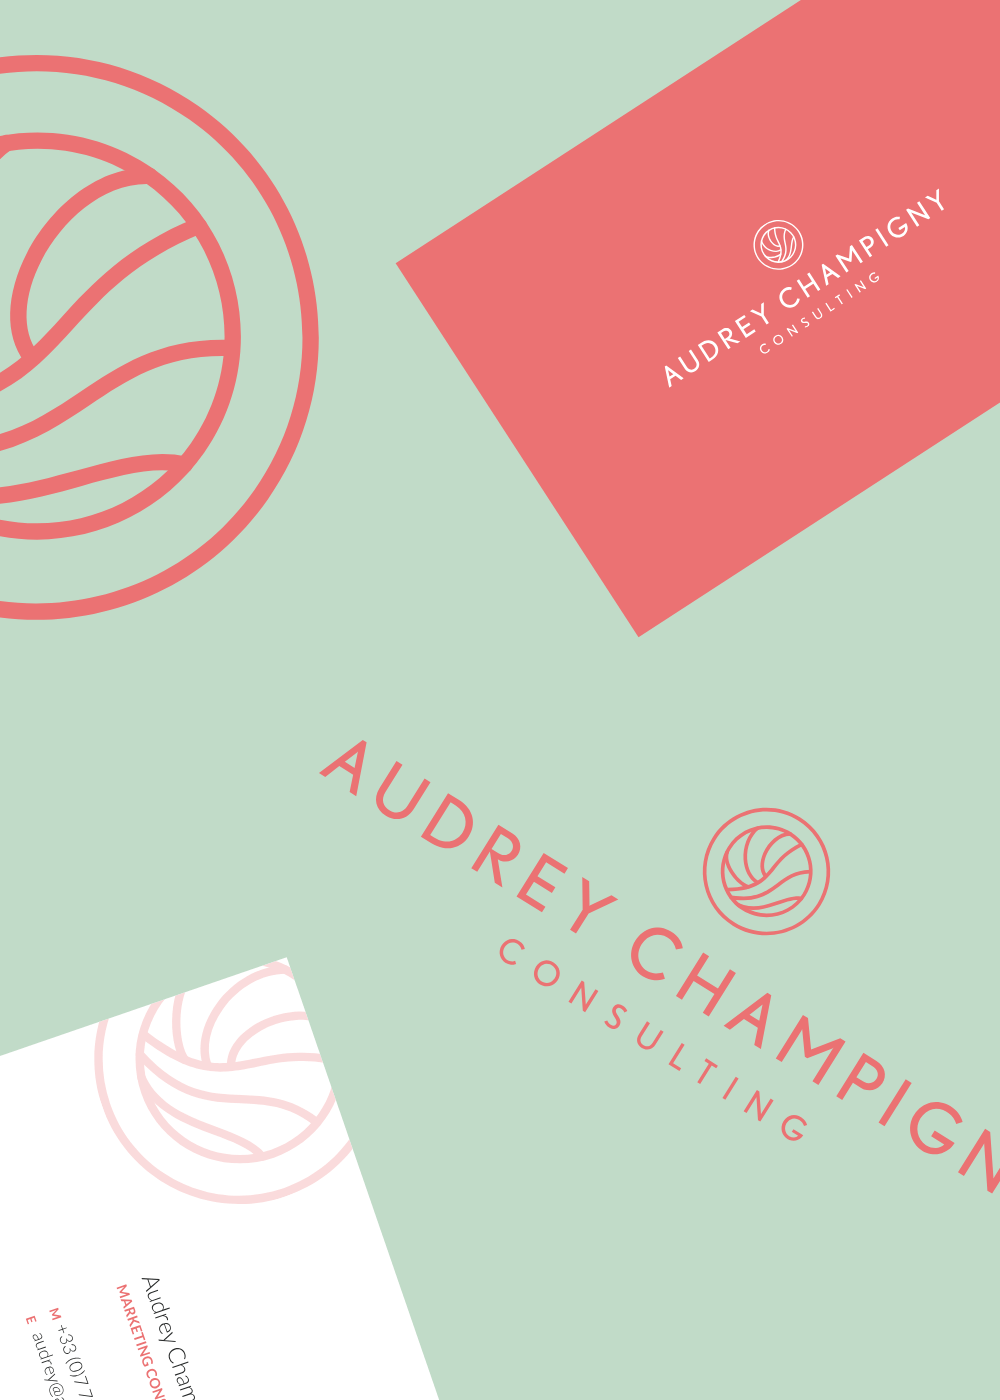 Audrey Champigny Consulting